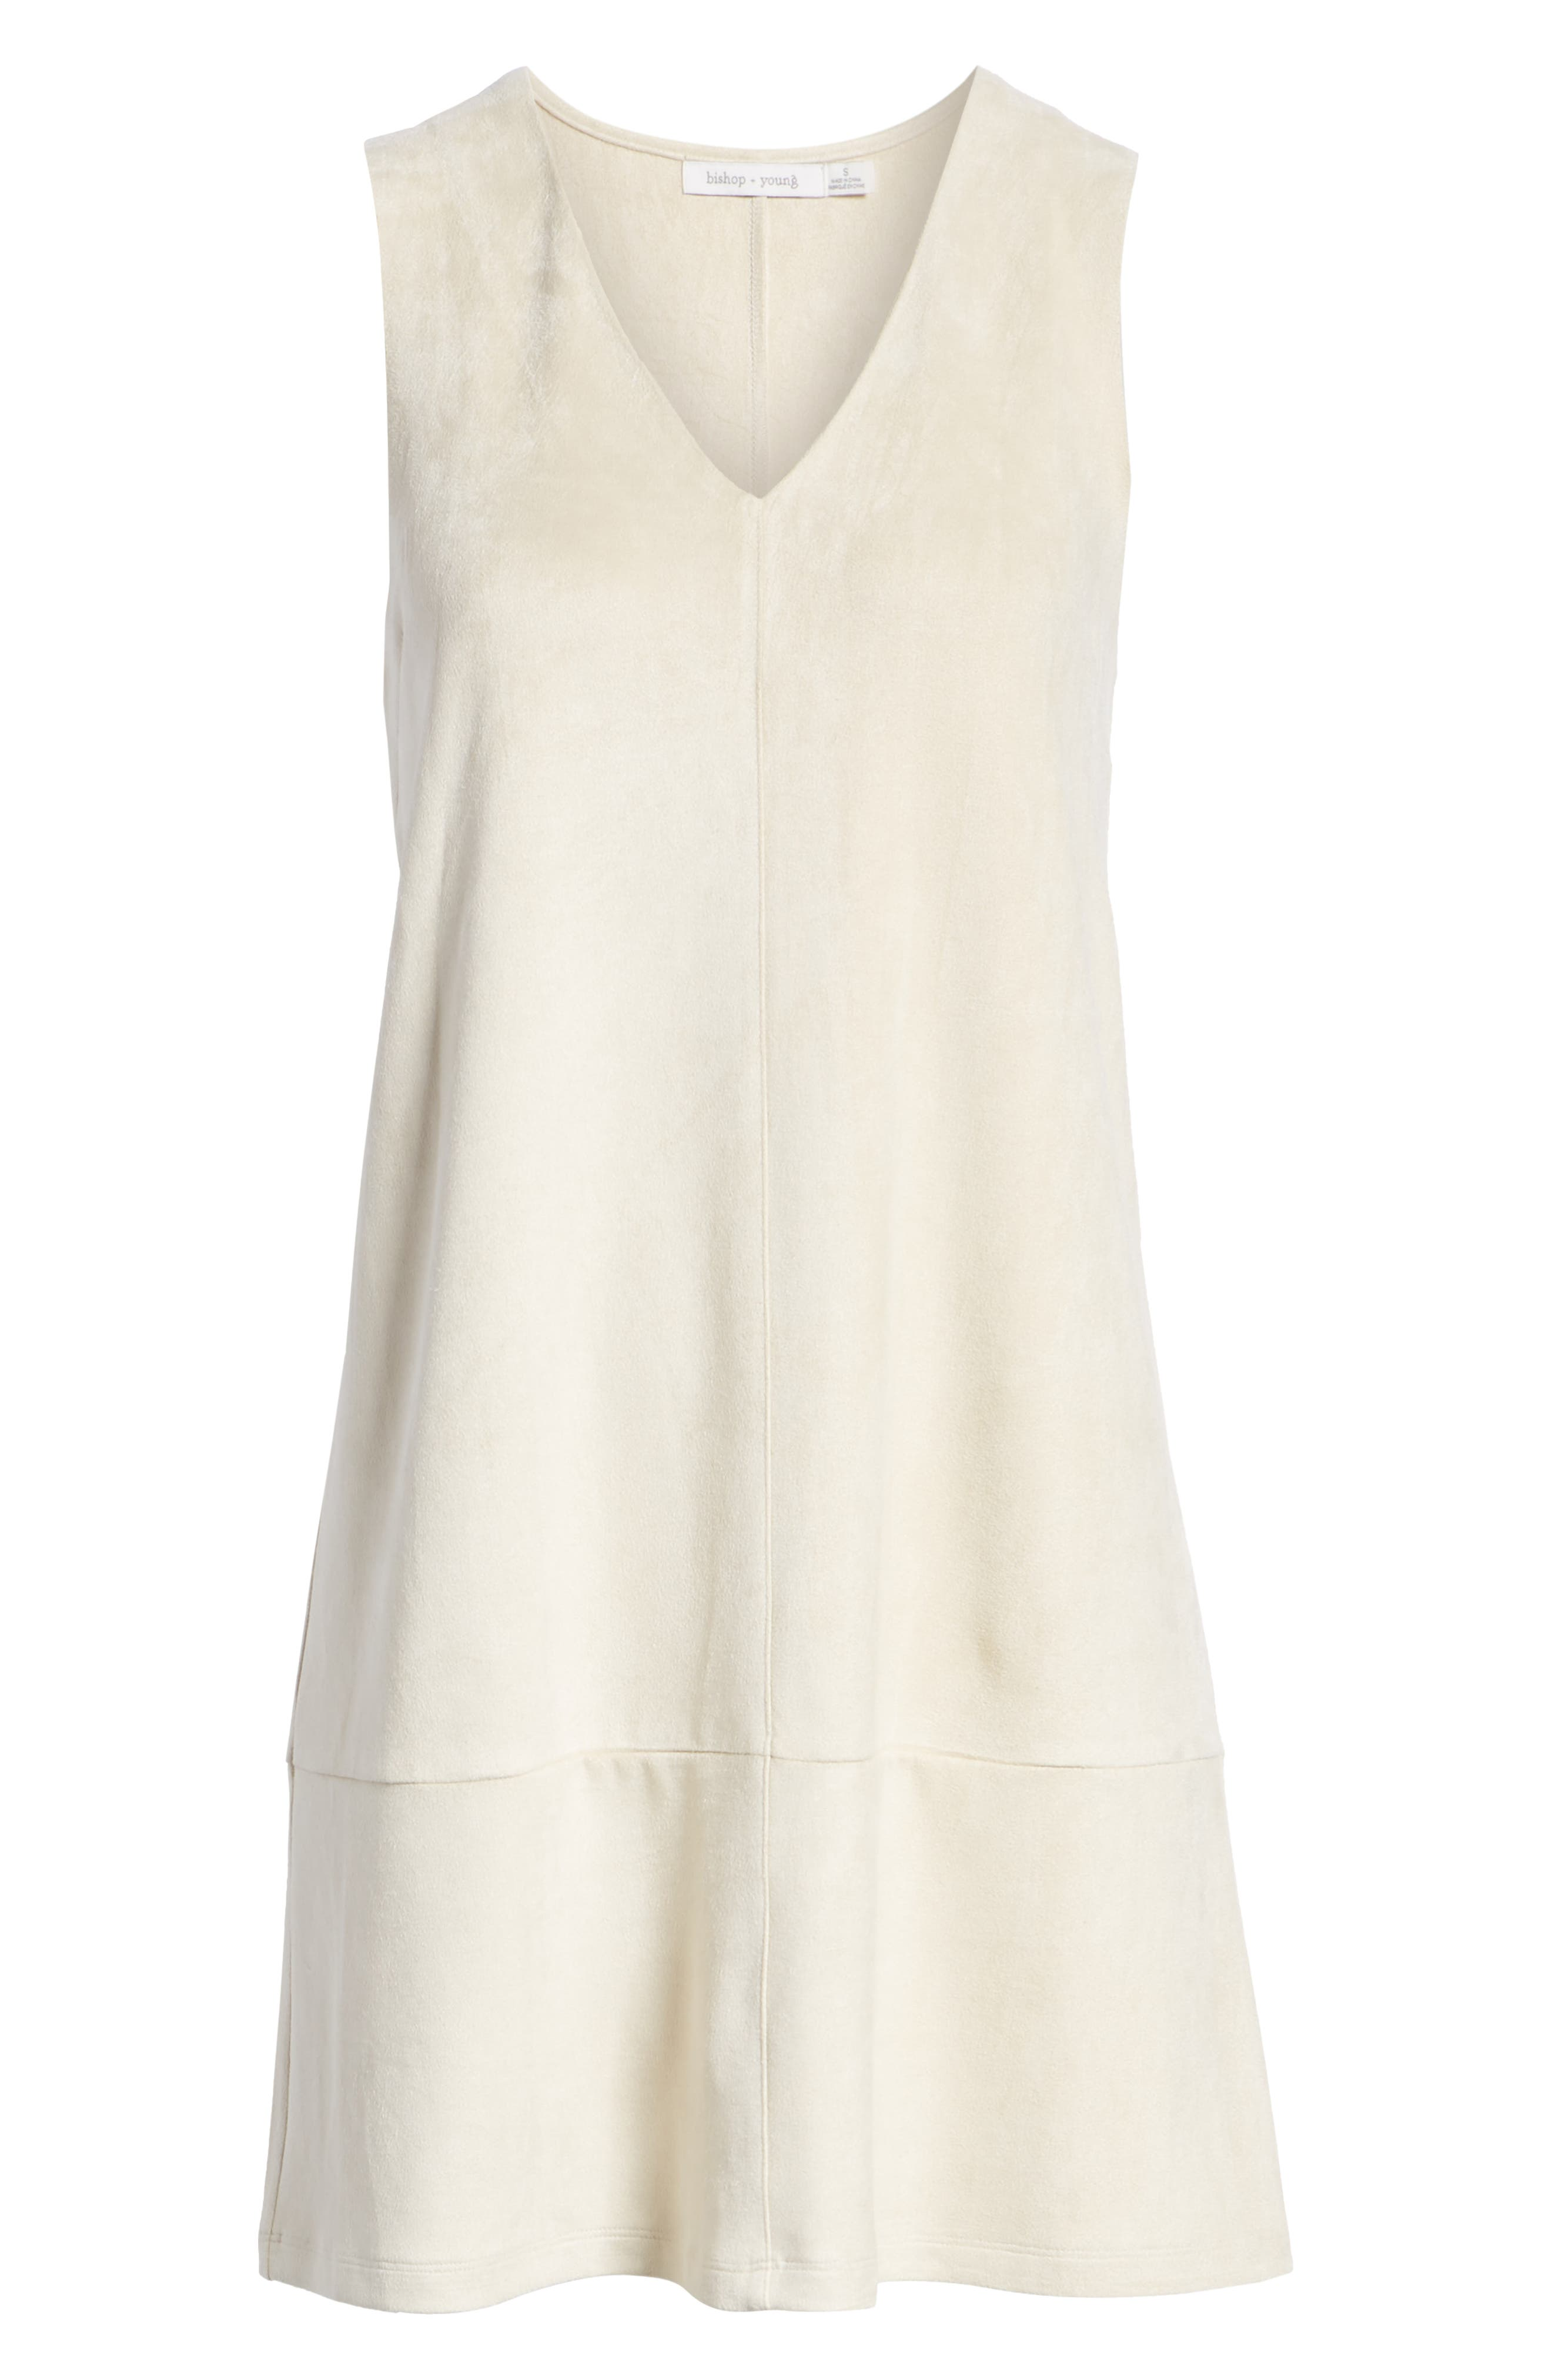 Sueded Sleeveless Shift Dress,                             Alternate thumbnail 7, color,                             251